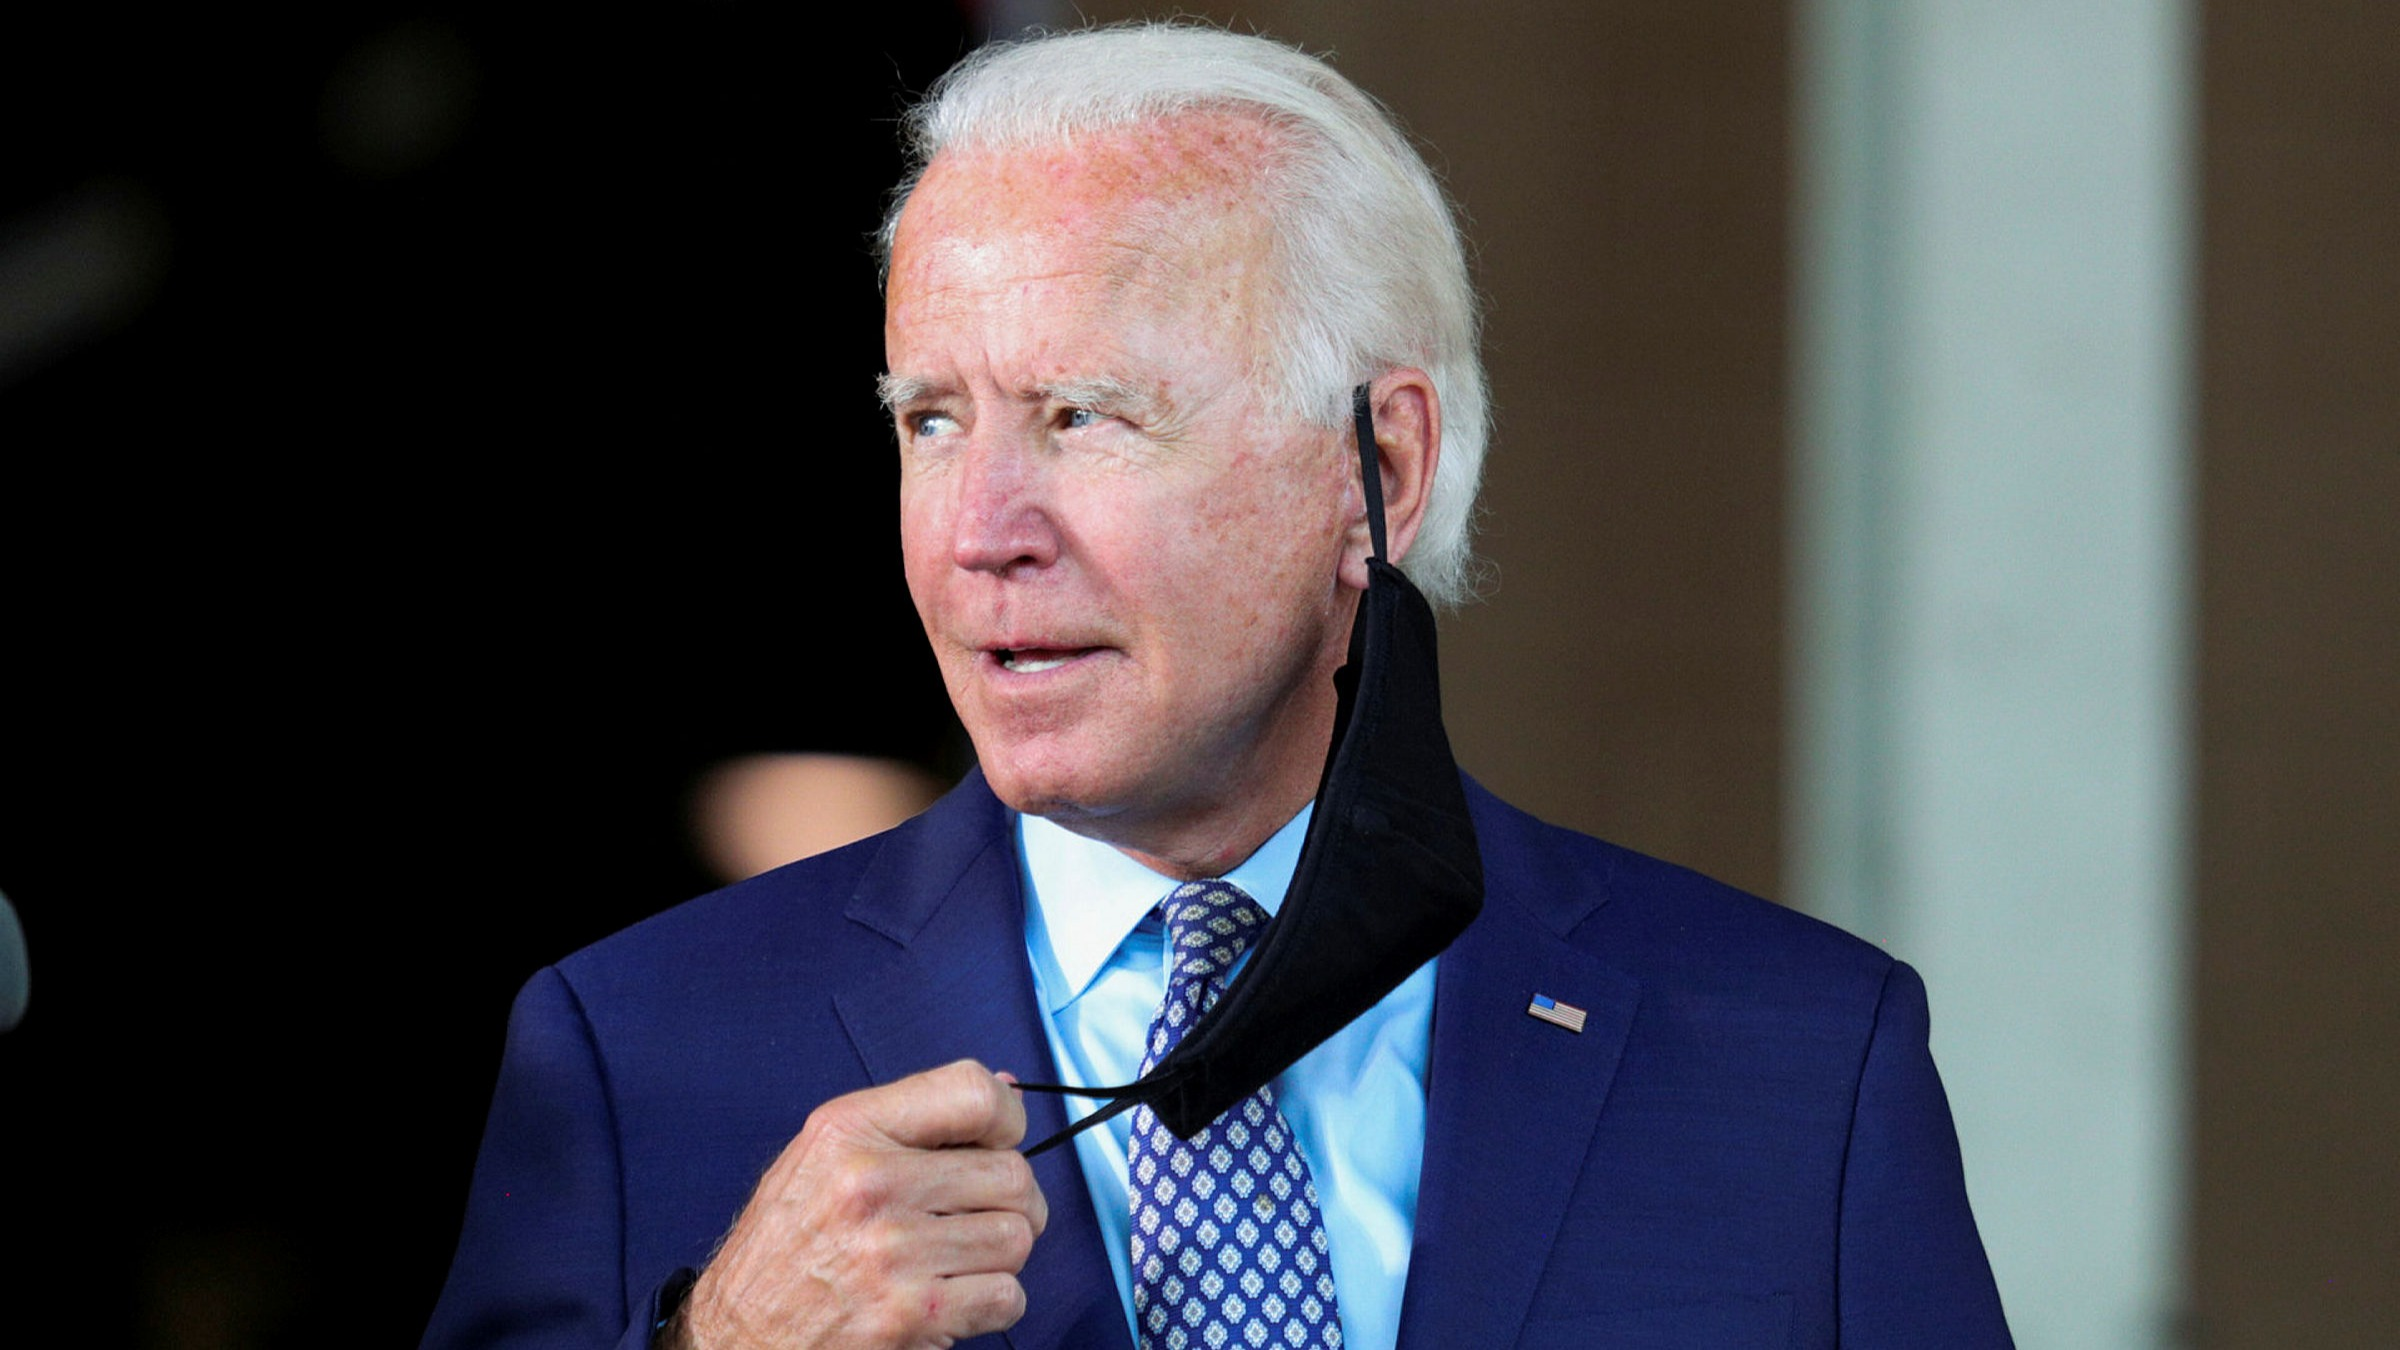 Joe Biden as change-maker is still a jarring picture, somehow. But that makes it all the more likely to materialise